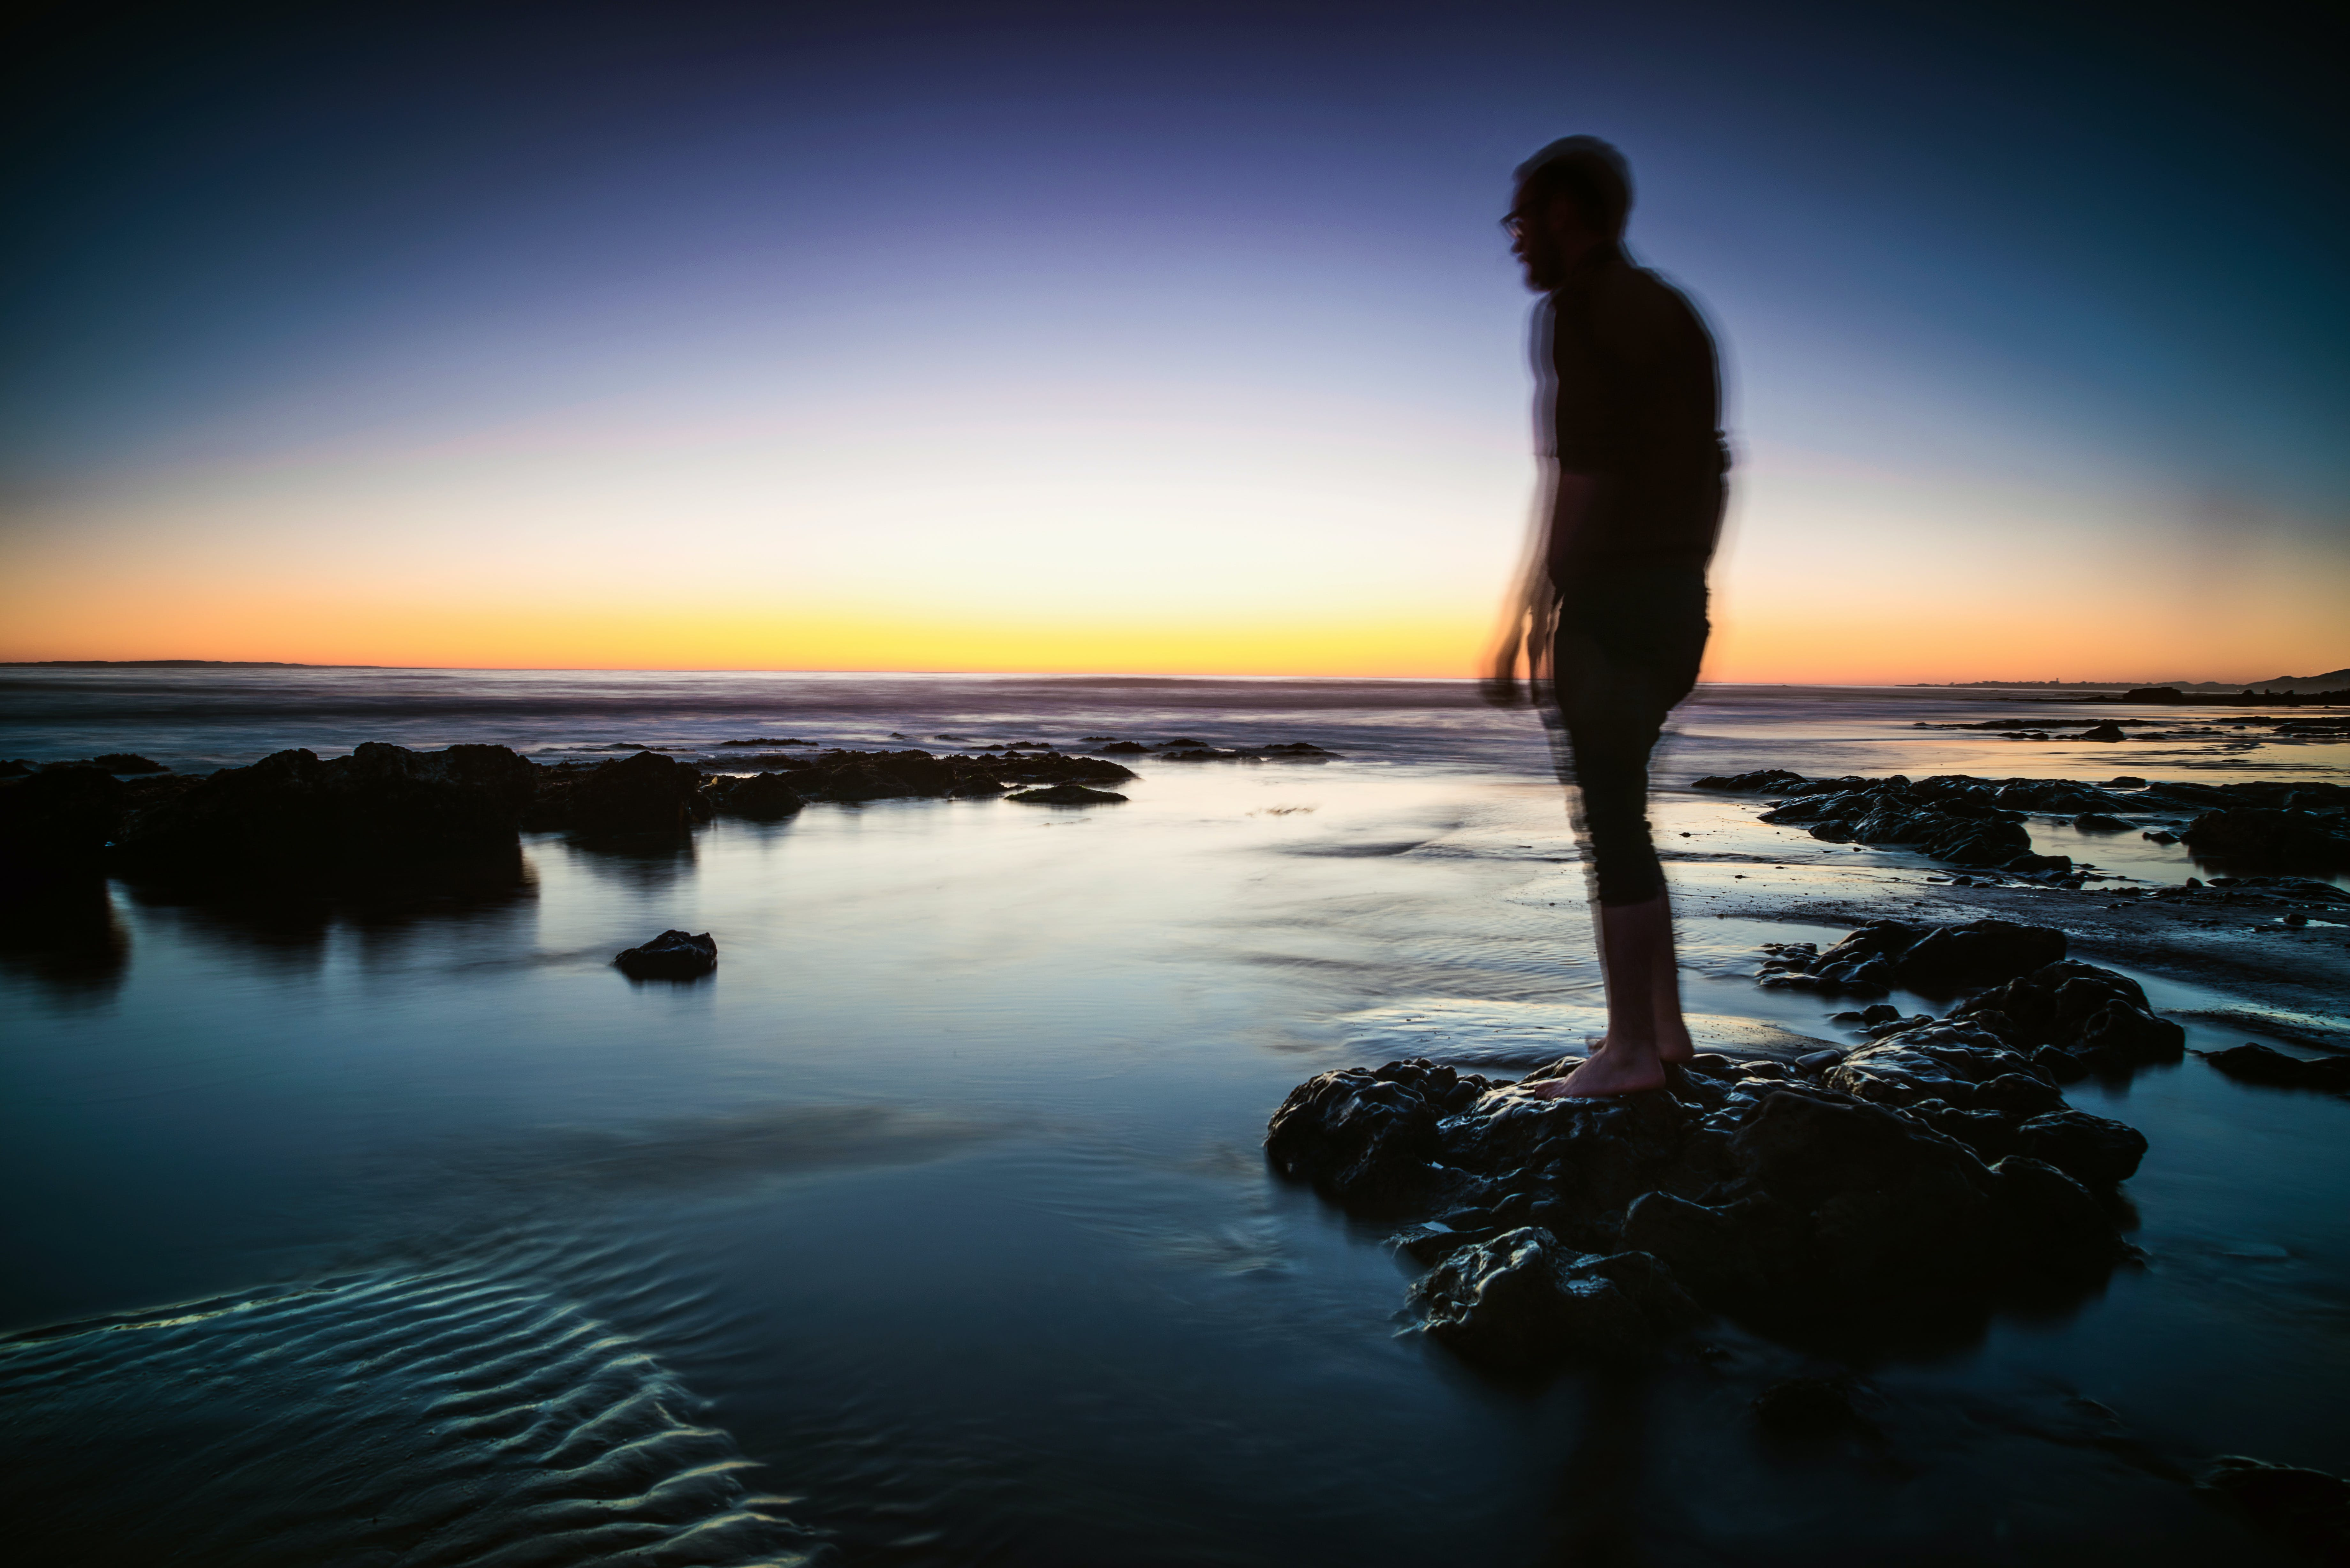 Silhouette of Man Standing on Rock Surrounded by Body of Water